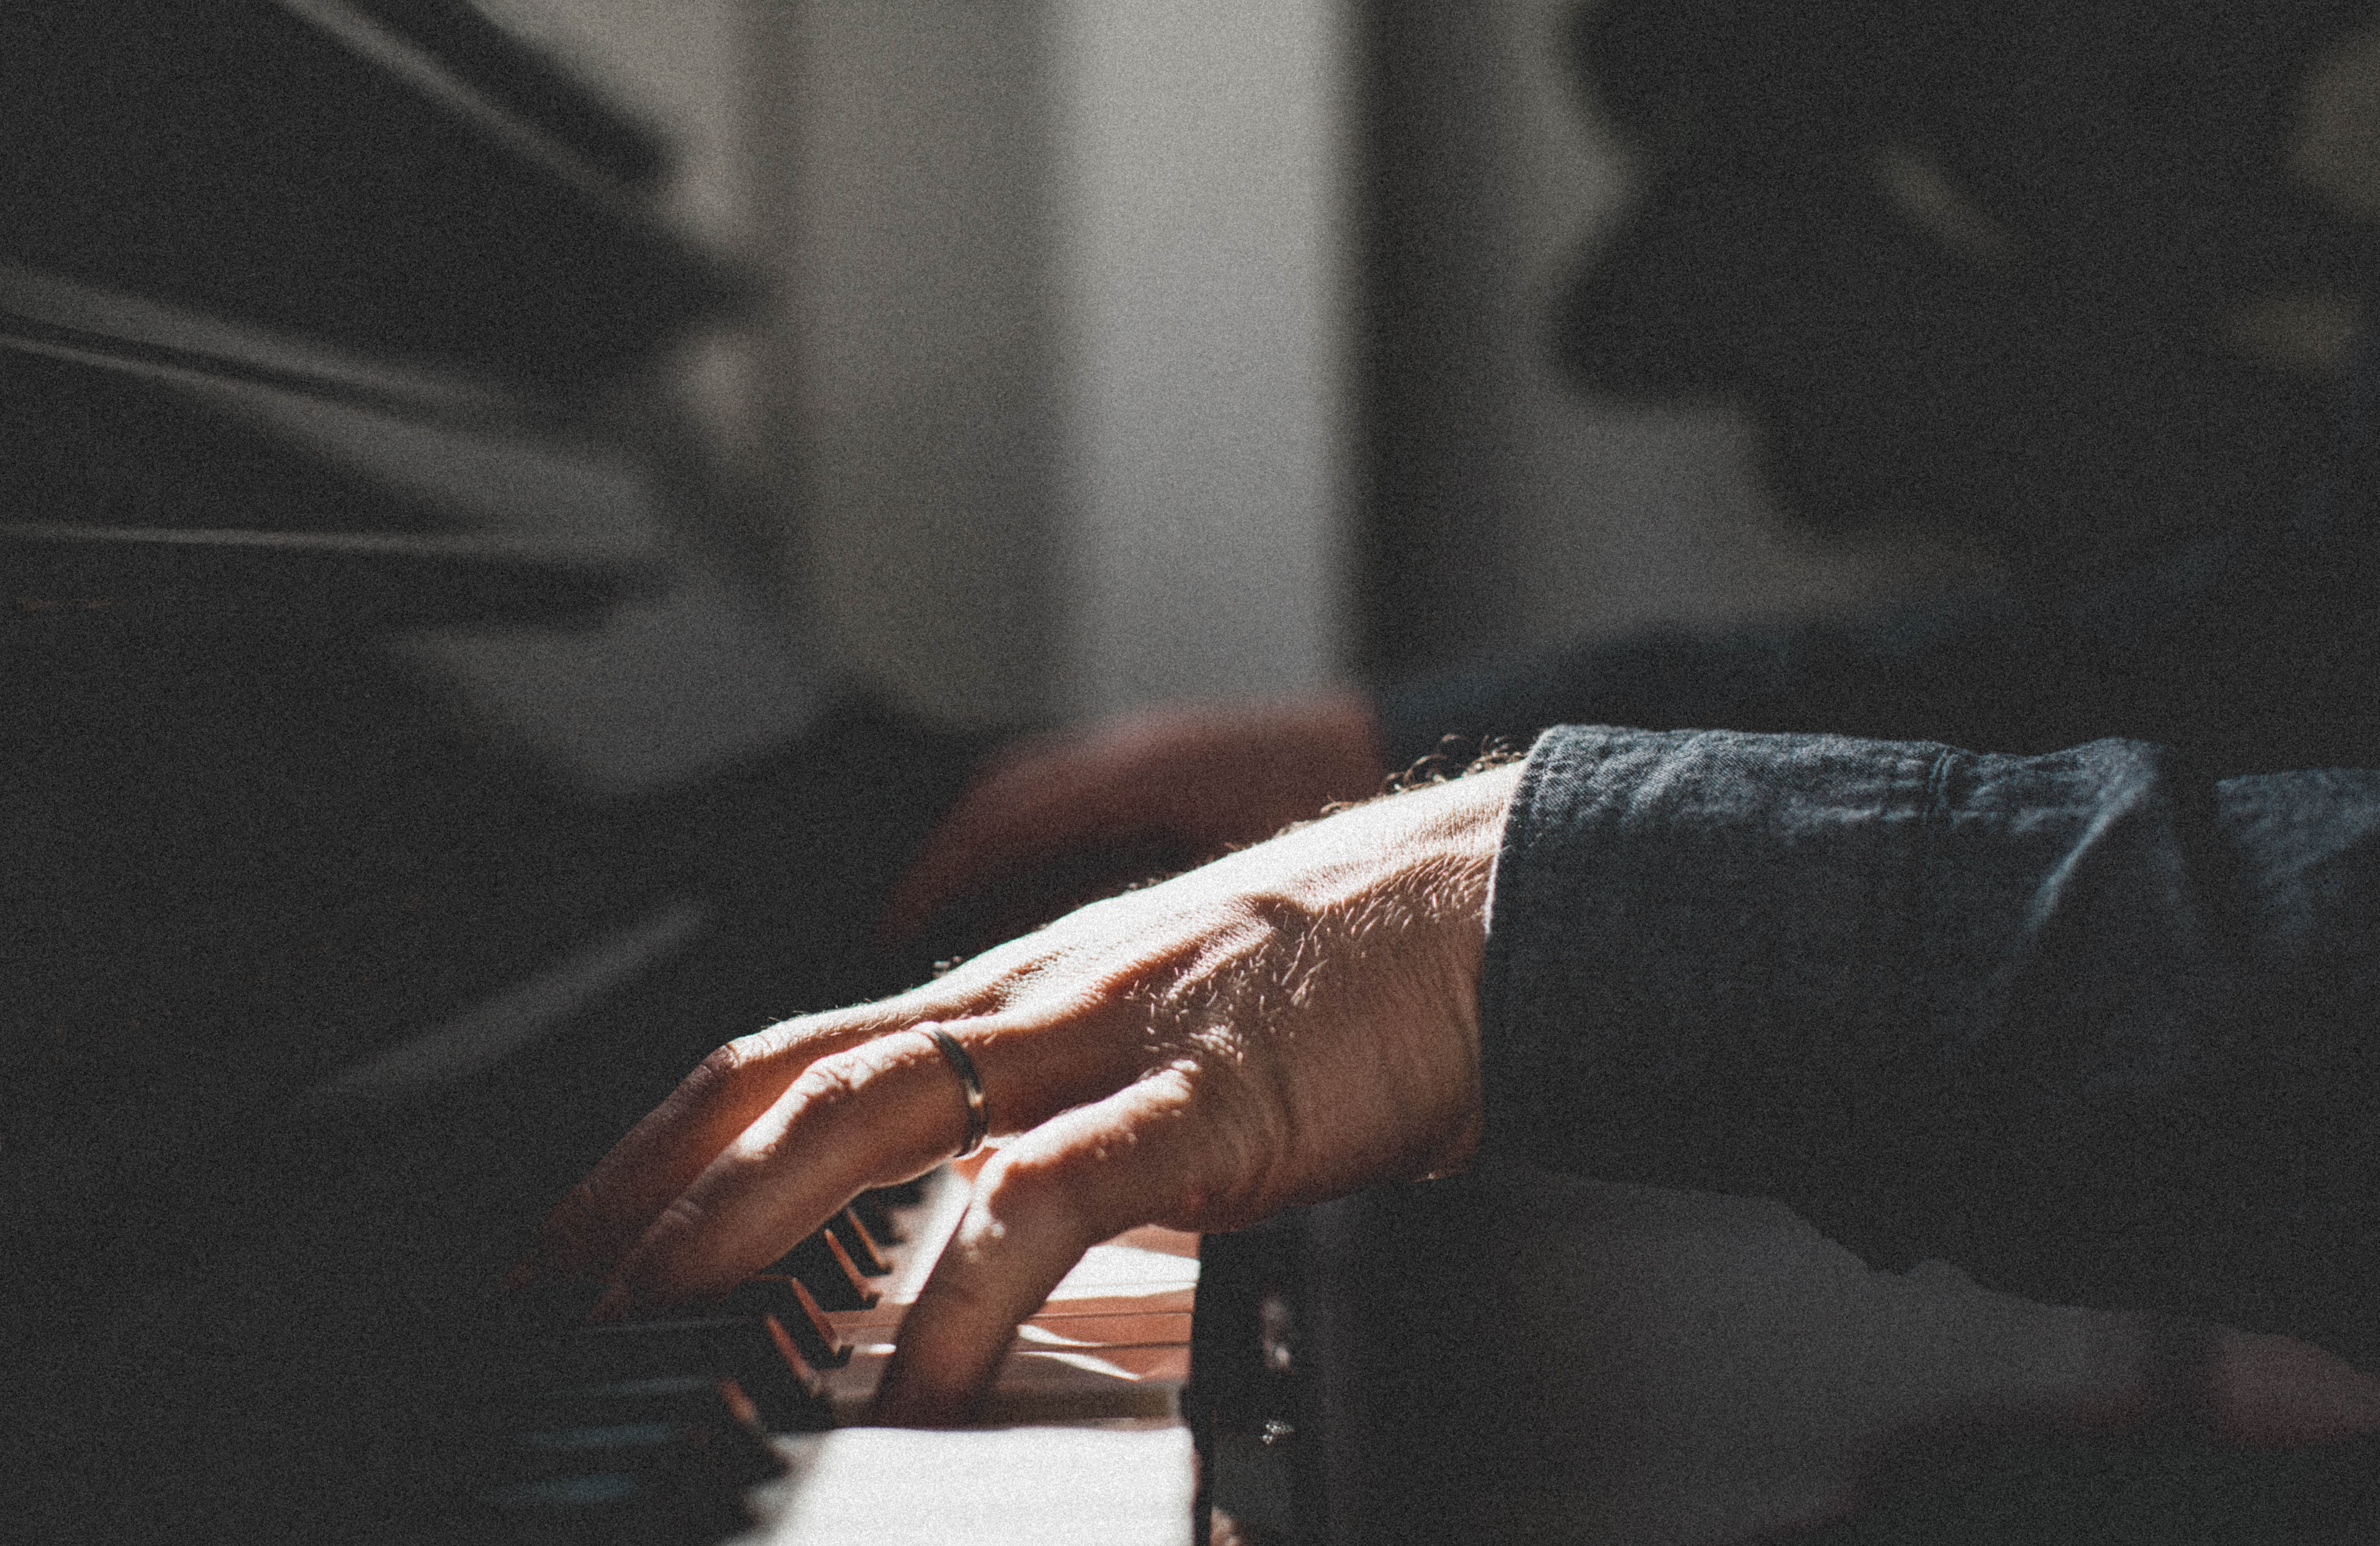 A grainy shot of a pianist's hands on the keyboard